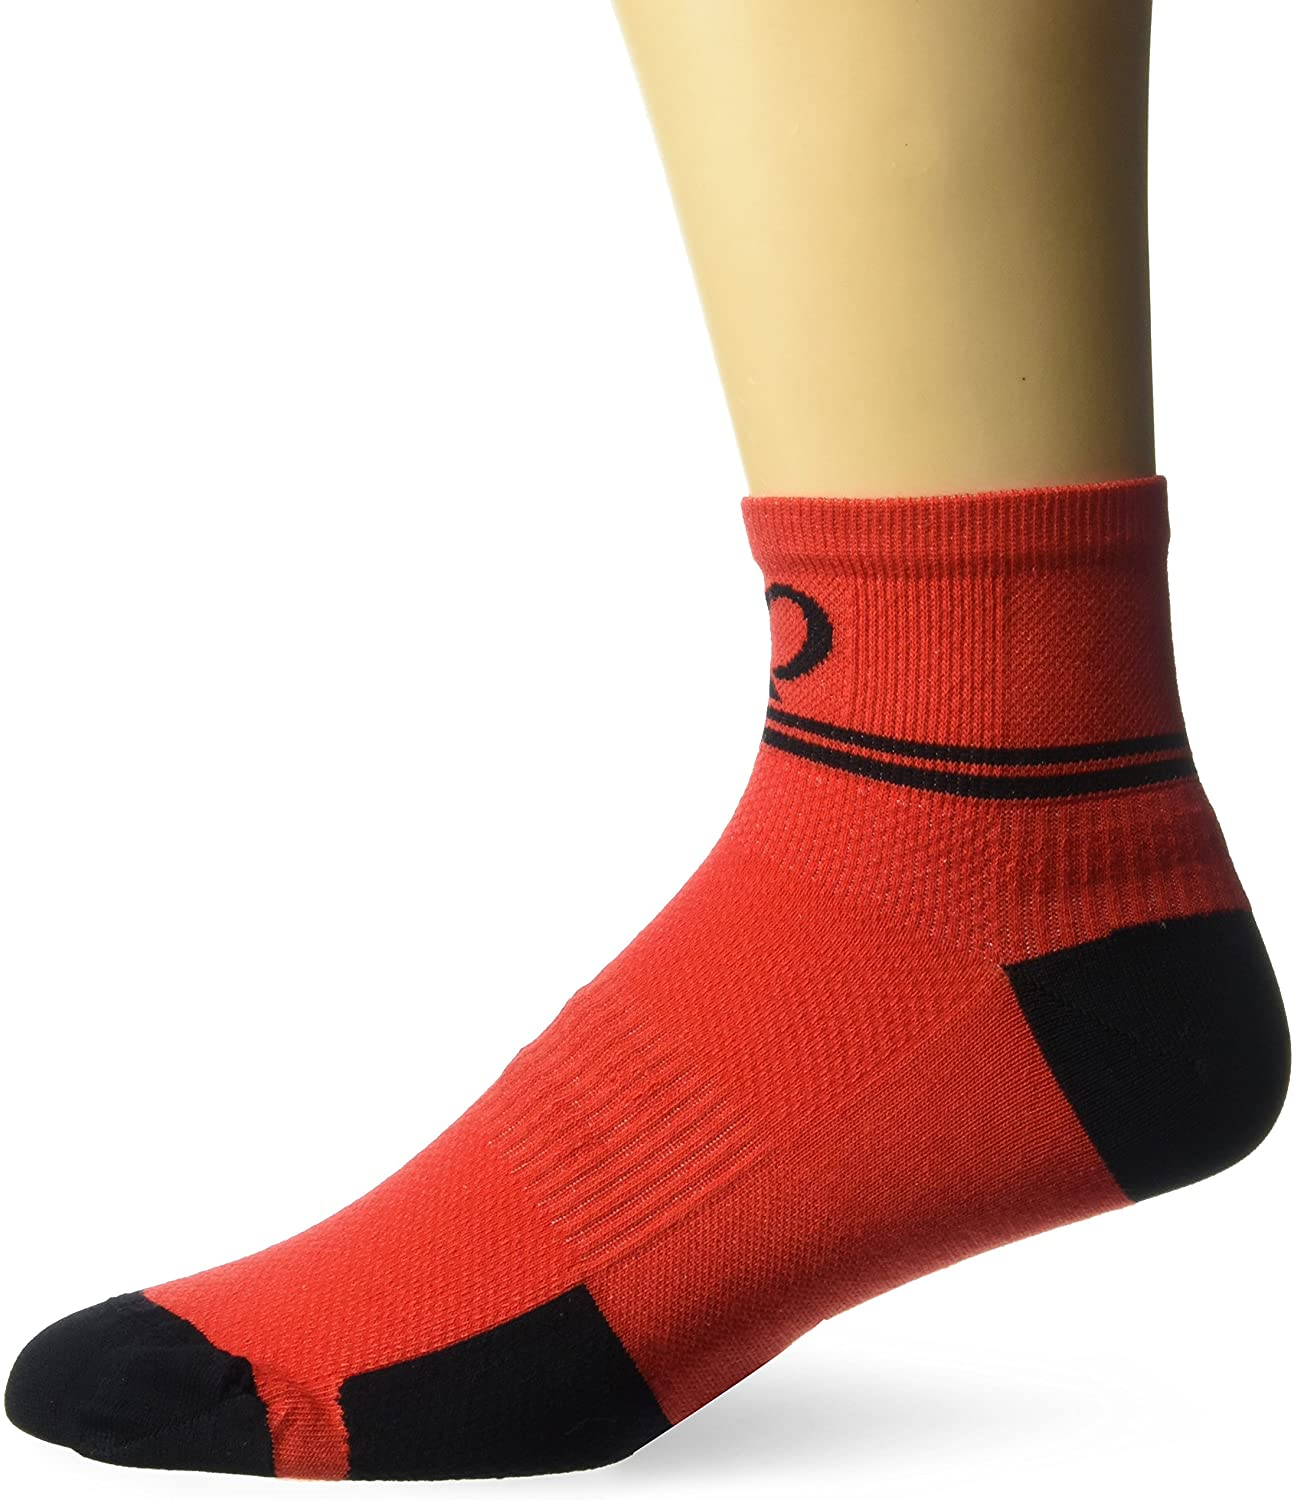 PEARL IZUMI Elite Low Sock, Rogue Red Diffuse, Large